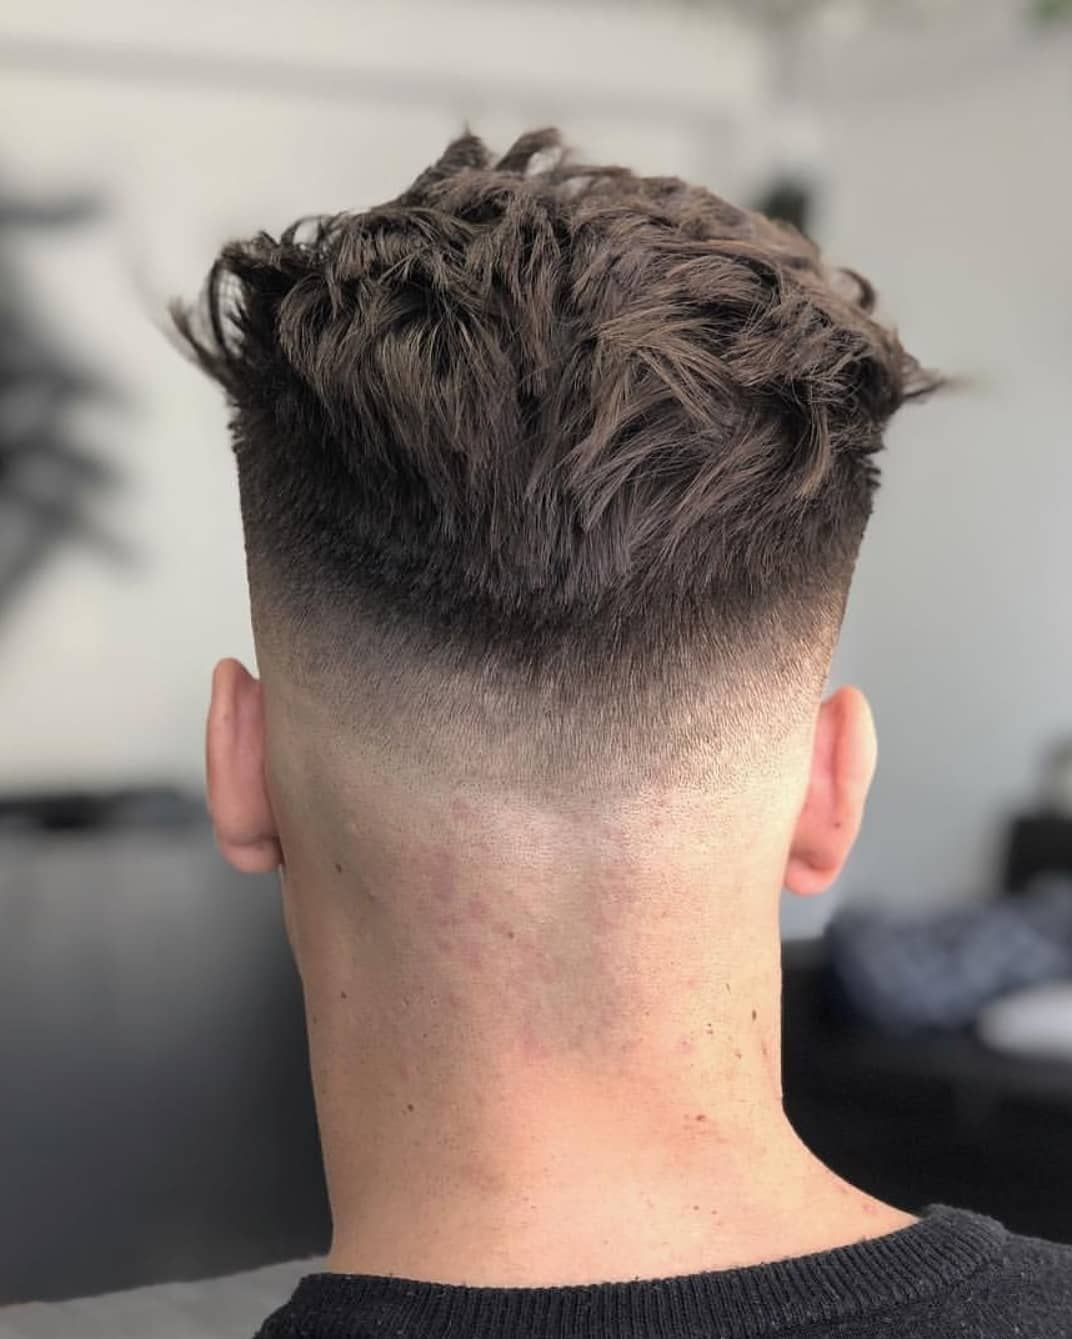 New The 10 Best Easy Hairstyles In The World Easy Hairstyle For Medium Hair For School Easy Hairstyles For Medium Hair Mens Hairstyles Medium Hair Styles